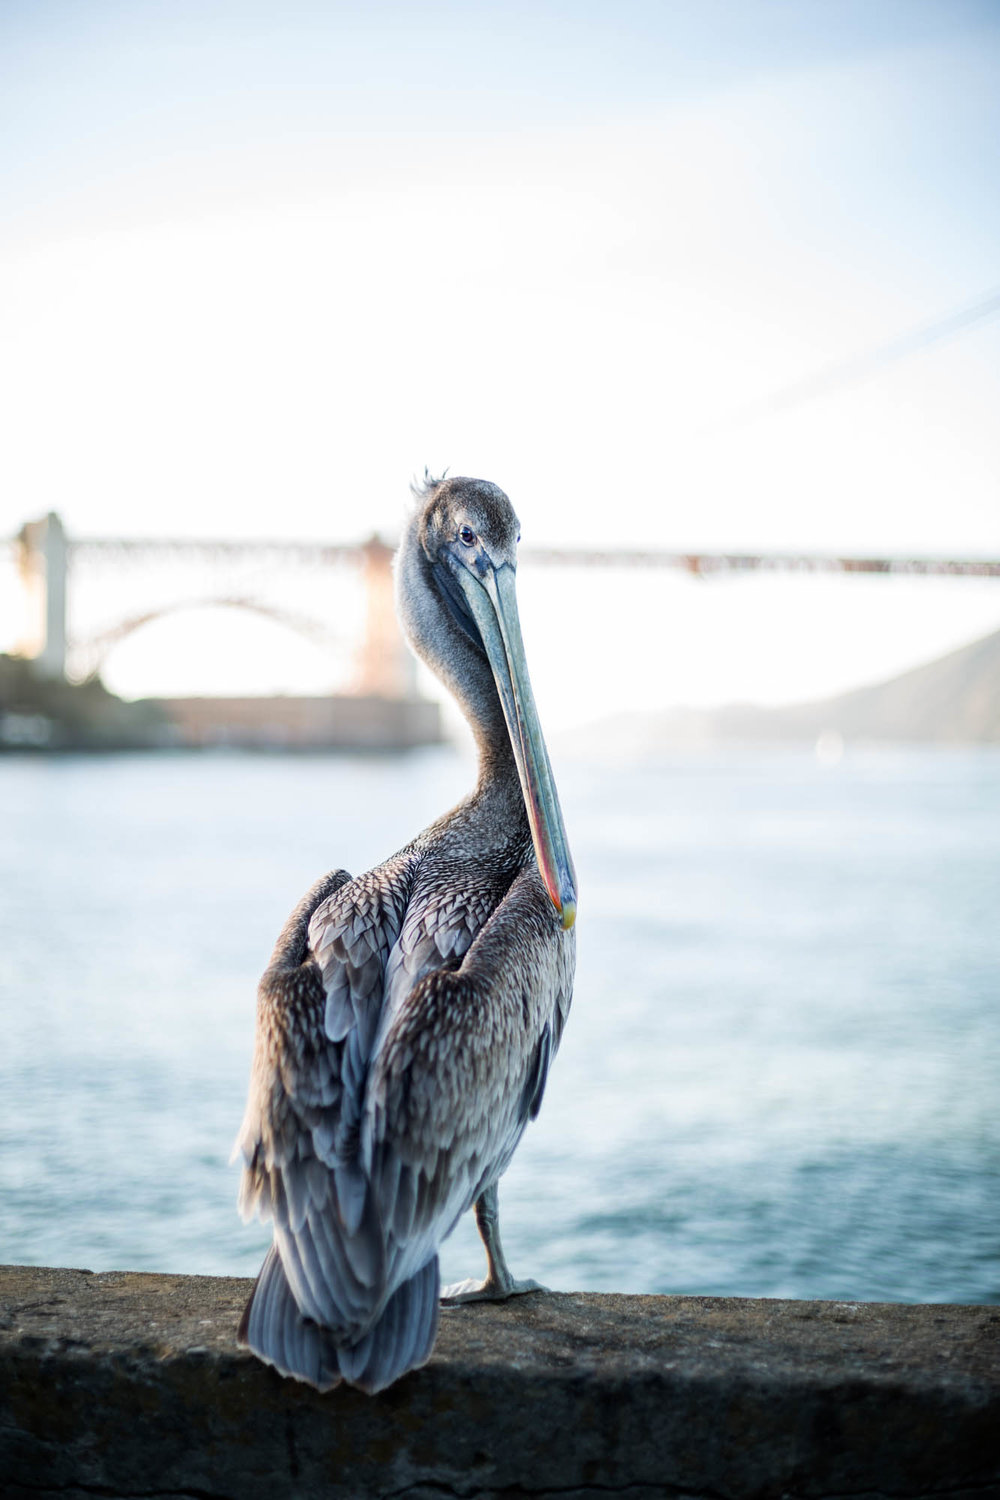 Pelican in front of the golden gate bridge in san francisco california